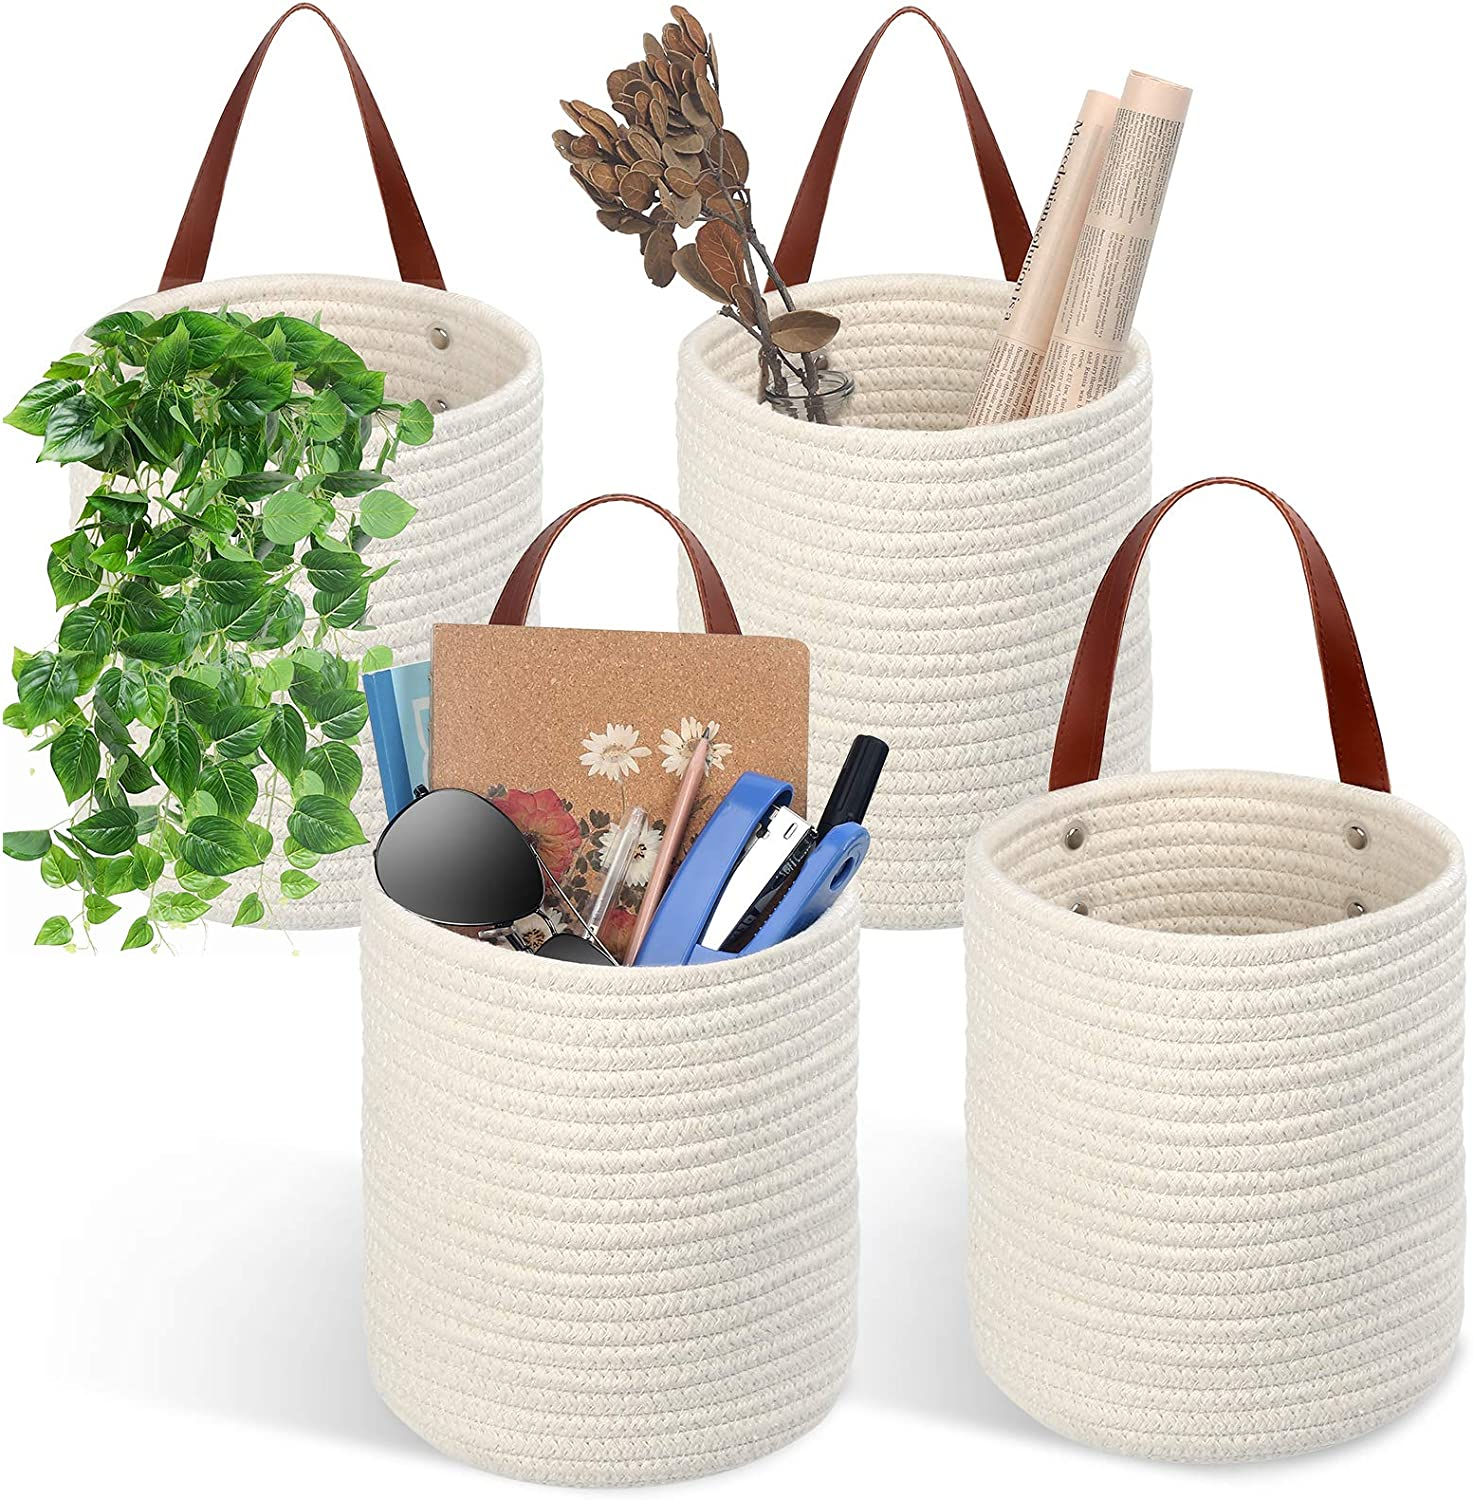 "TomCare 4 Pack Hanging Baskets Wall Basket 7.9"" x 6.7"" Small Woven Storage Baskets Cotton Rope Hanging Storage with Leather Handles Small Decorative Baskets Organizer for Plants Bedroom Office White"